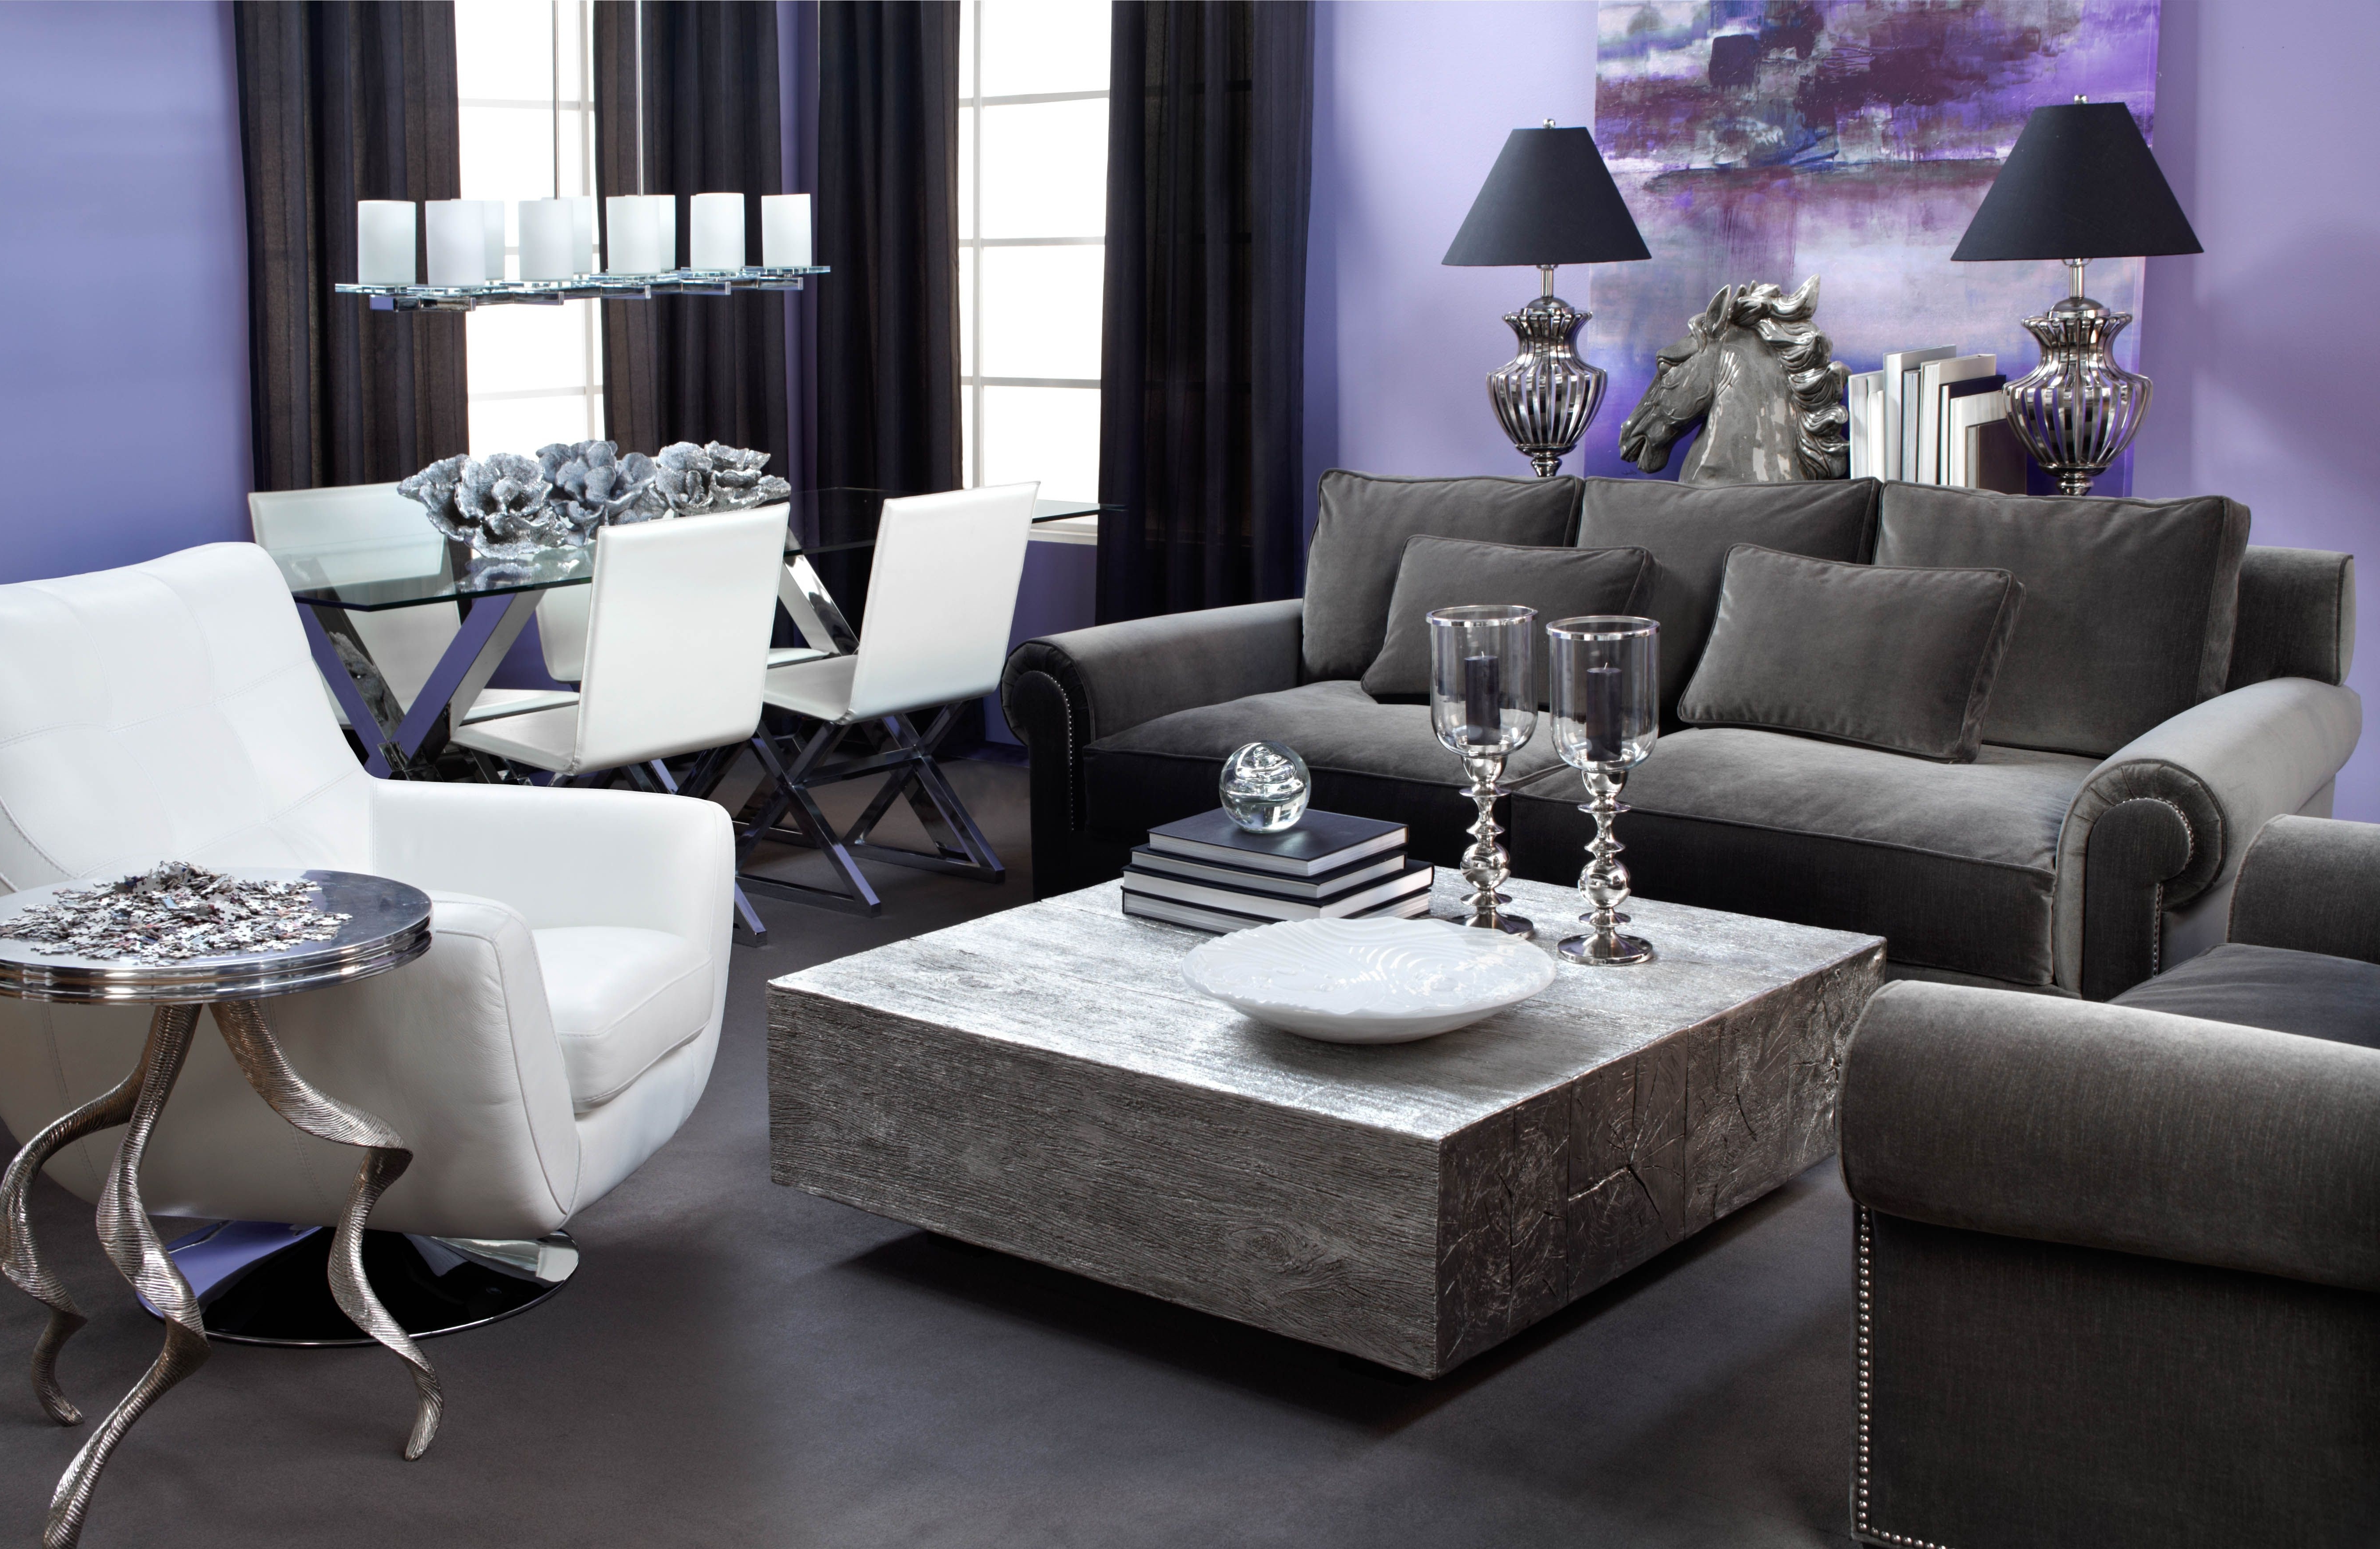 2019 Aubergine Pairs Well With Charcoal Grey Sofas, Silver Accents, And In Charcoal Grey Sofas (View 20 of 20)